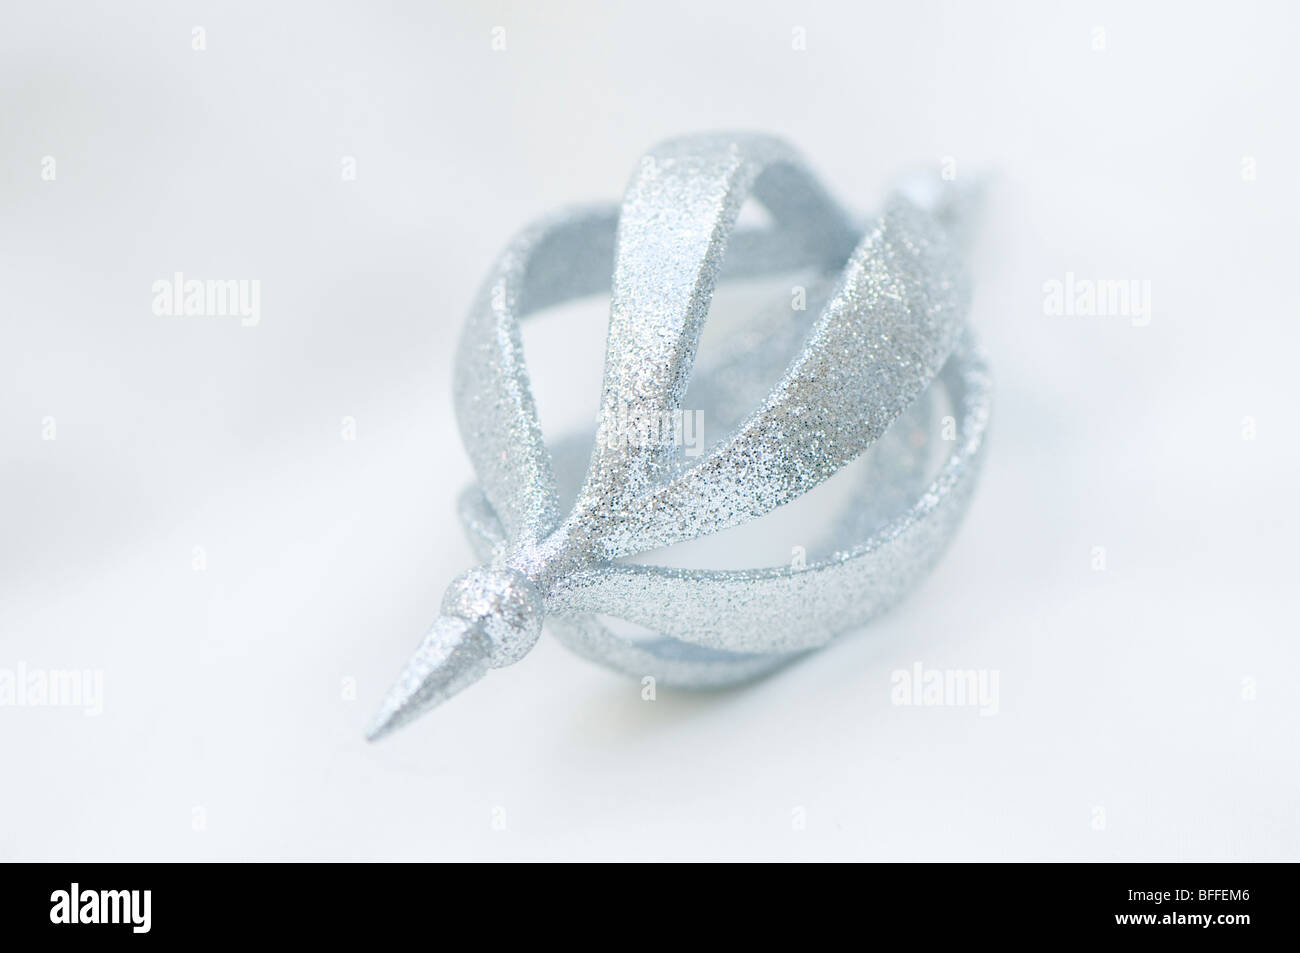 Silver glittery Christmas decoration against a creamy white background - Stock Image